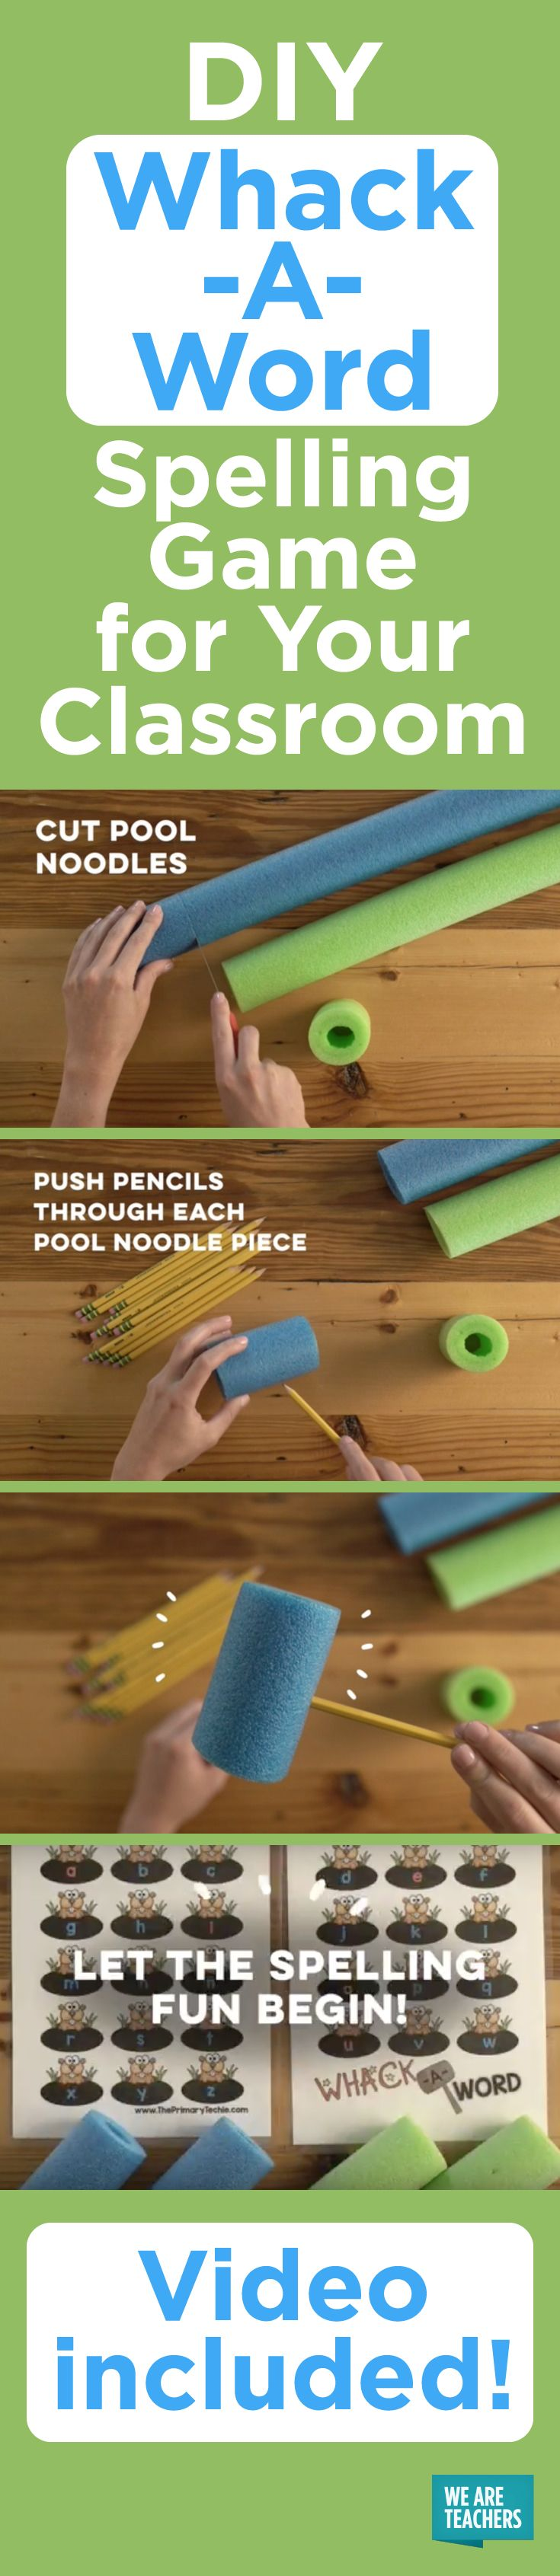 Practice spelling with this interactive spelling game for grades K-3 using pool noodles and a projector. It's a teacher review hack at its finest!